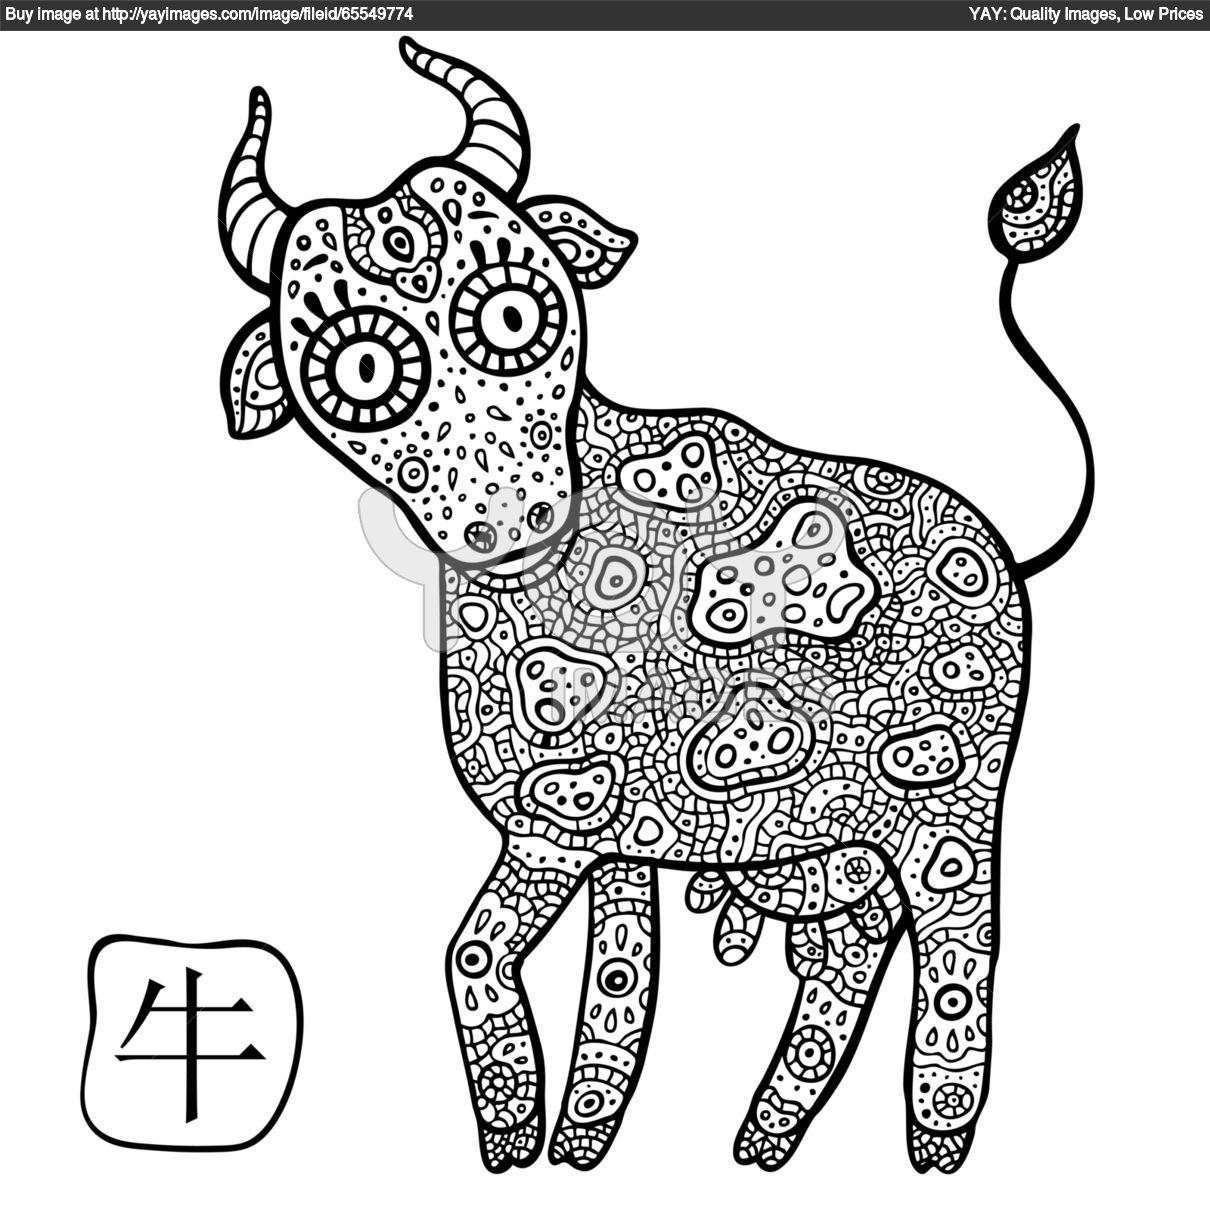 chinese zodiac signs coloring pages printable coloring 6 pinterest coloring signs and. Black Bedroom Furniture Sets. Home Design Ideas